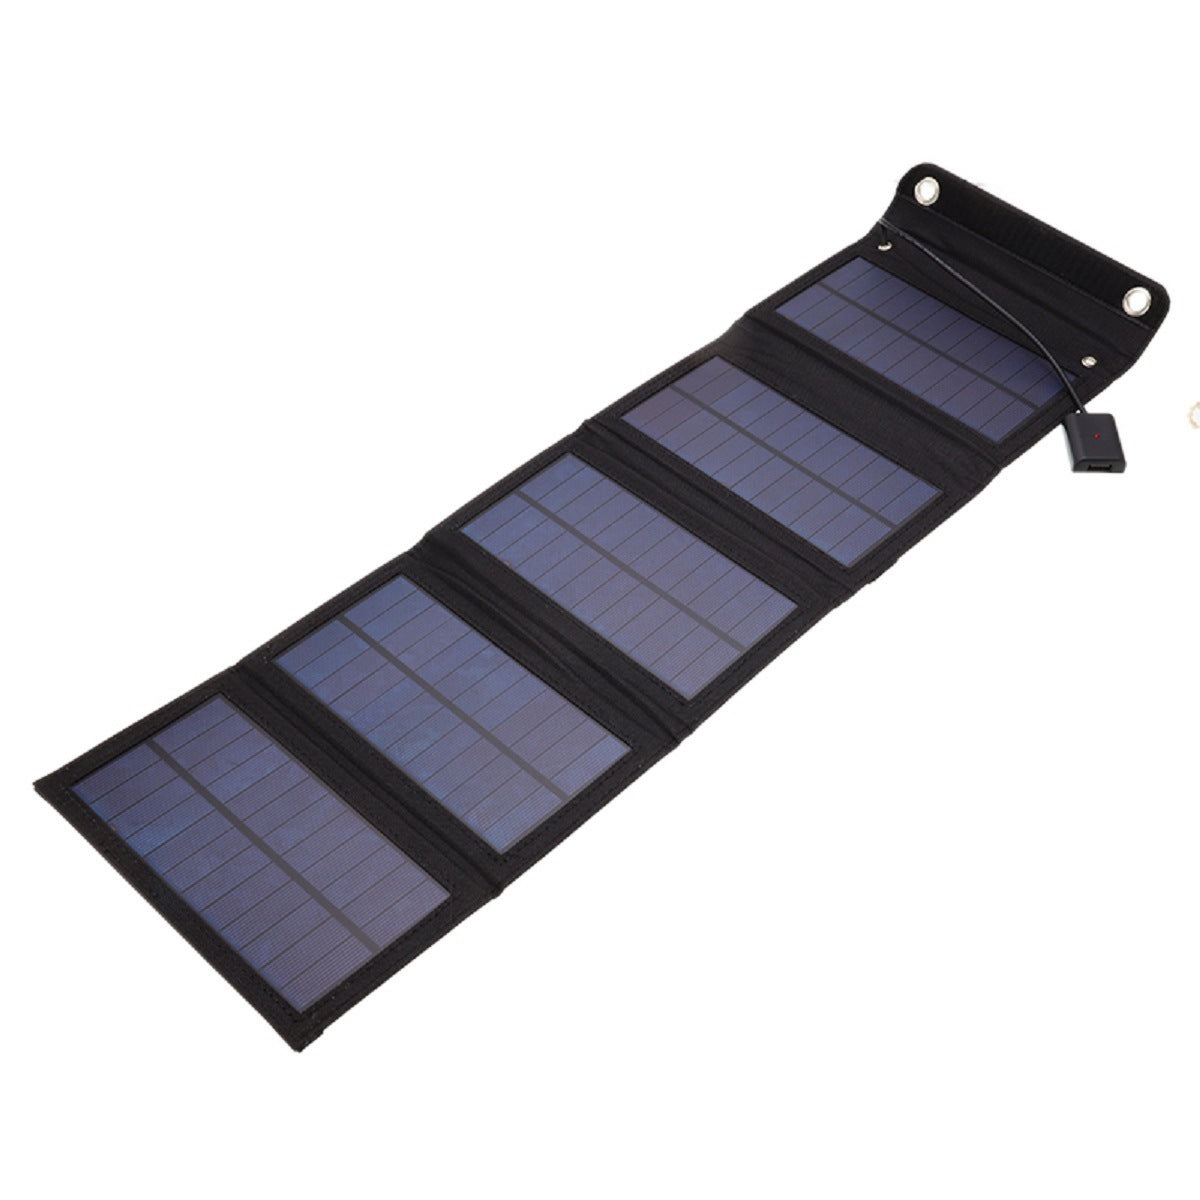 25W Solar Panel Foldable Portable Waterproof USB Energy Solar Cell Charger